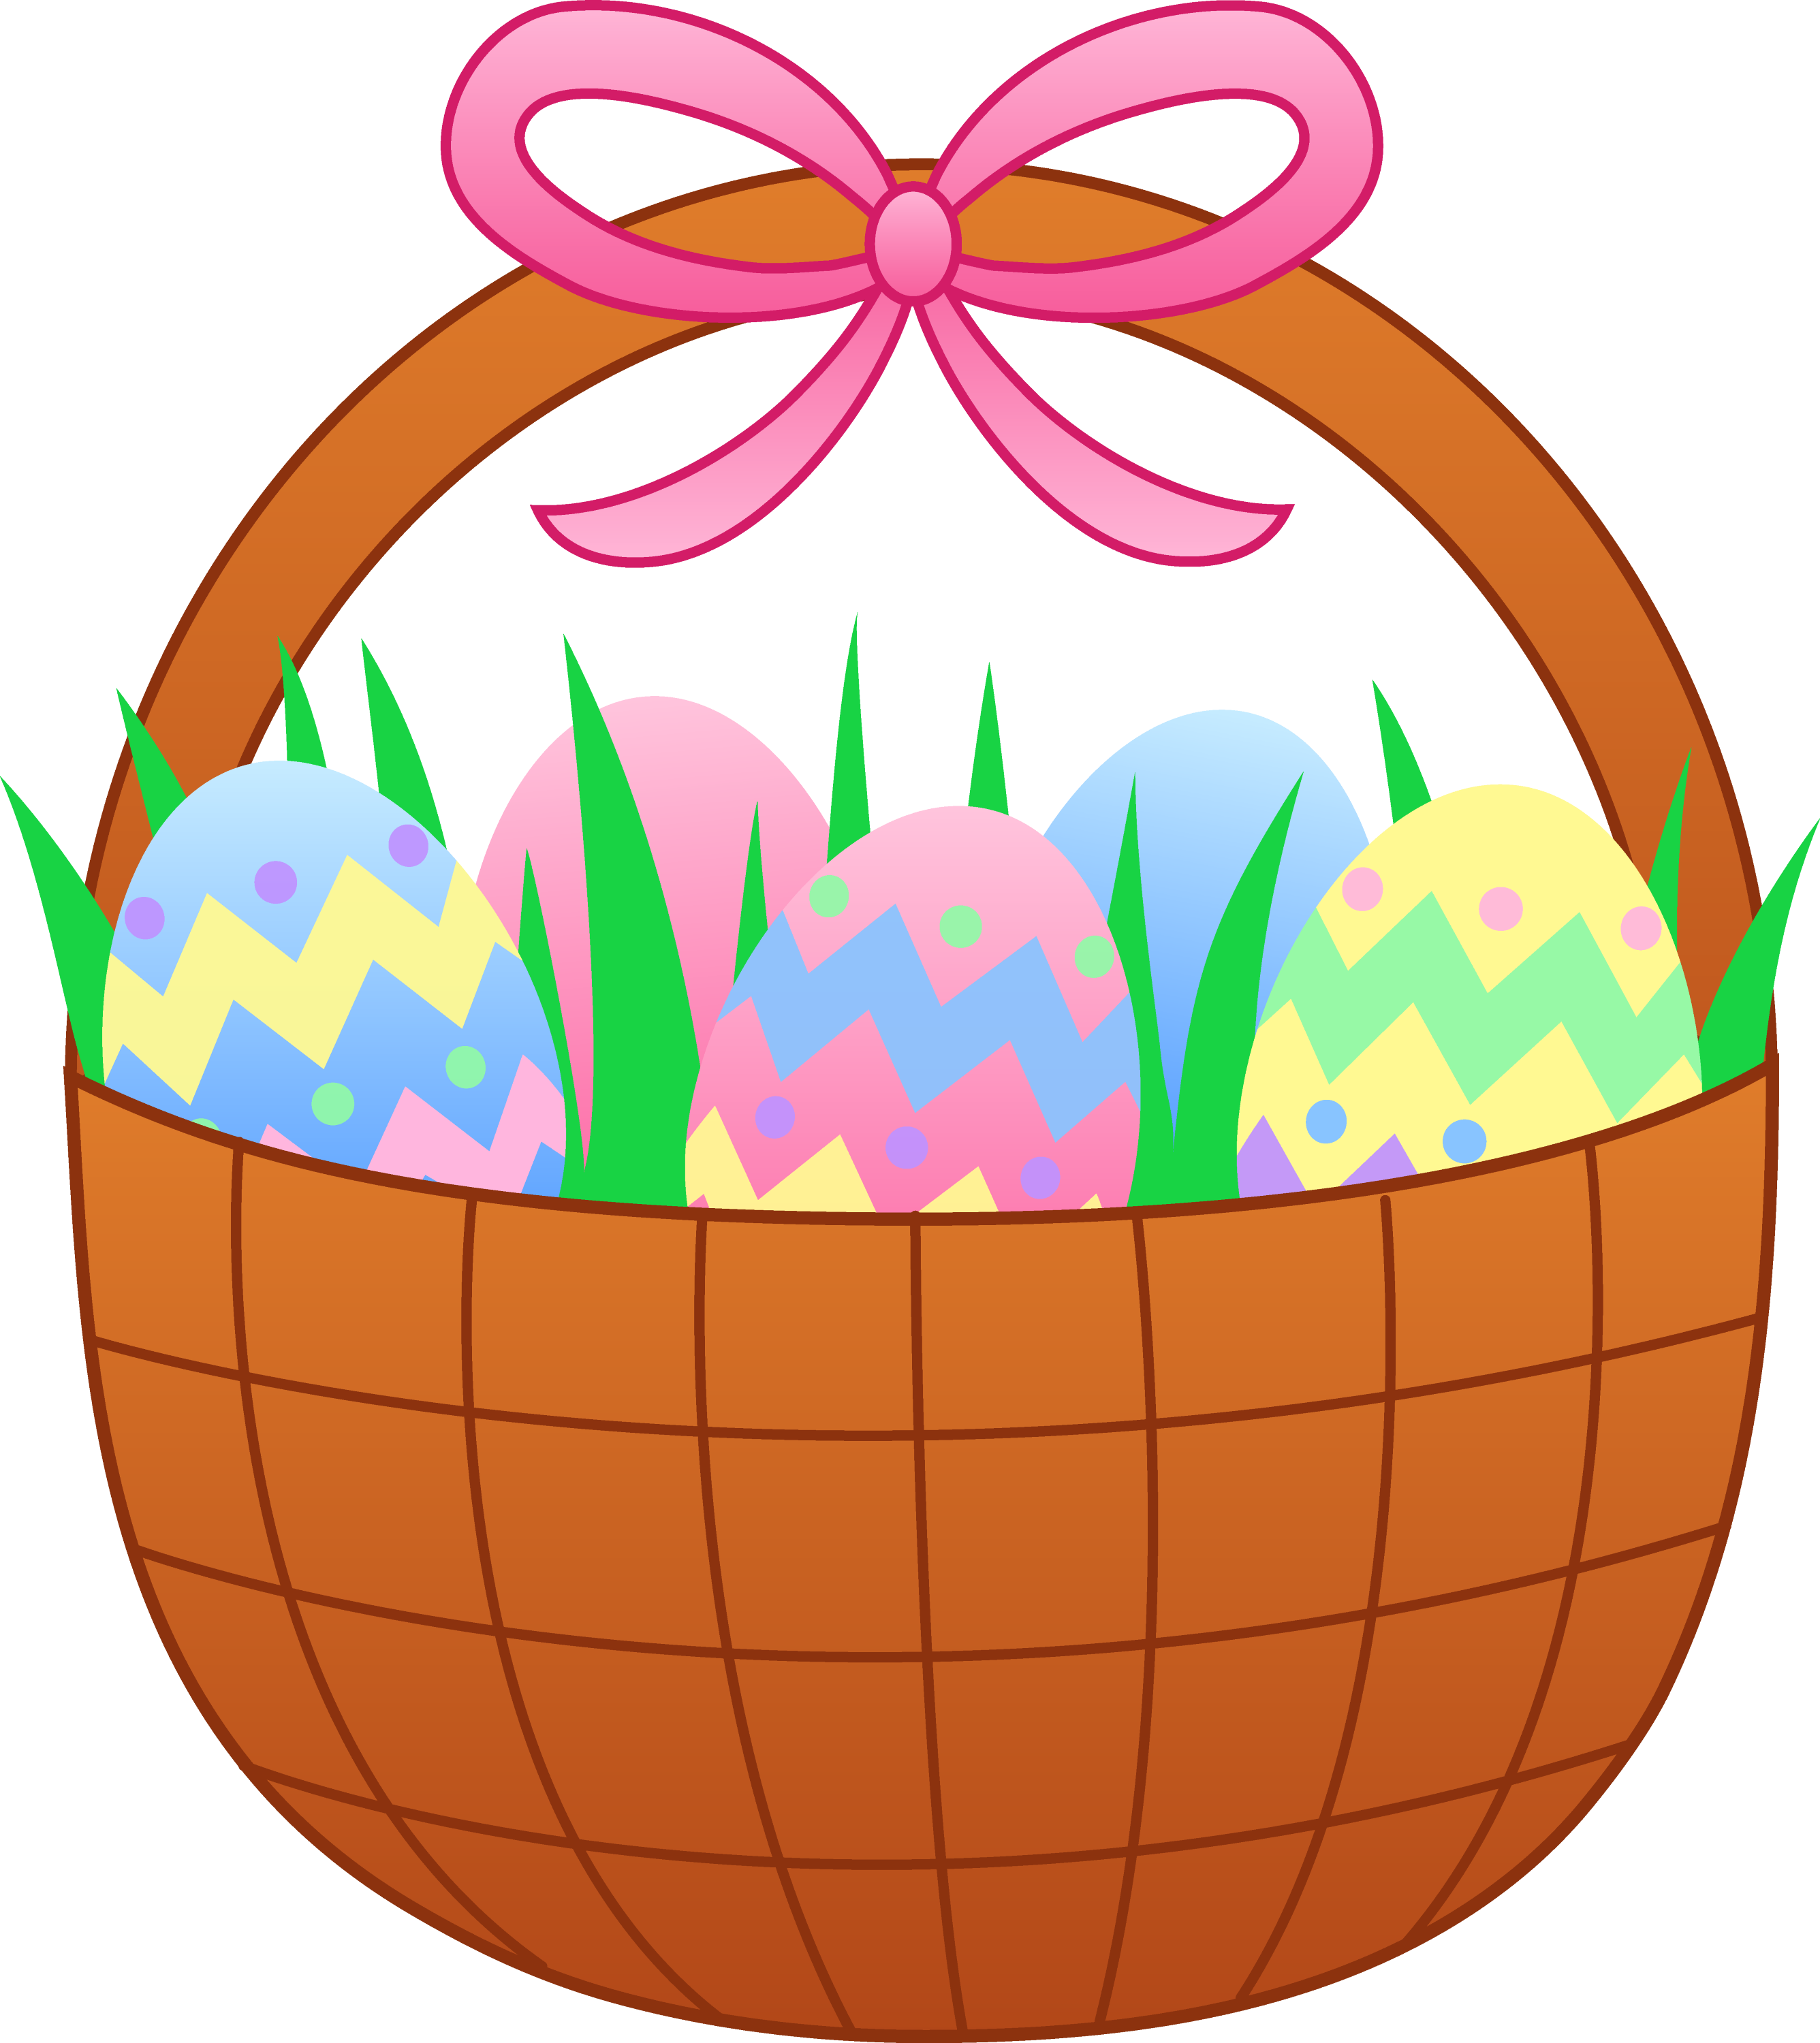 easter basket with colorful eggs free clip art rh sweetclipart com easter basket clip art images black and white empty easter basket clipart